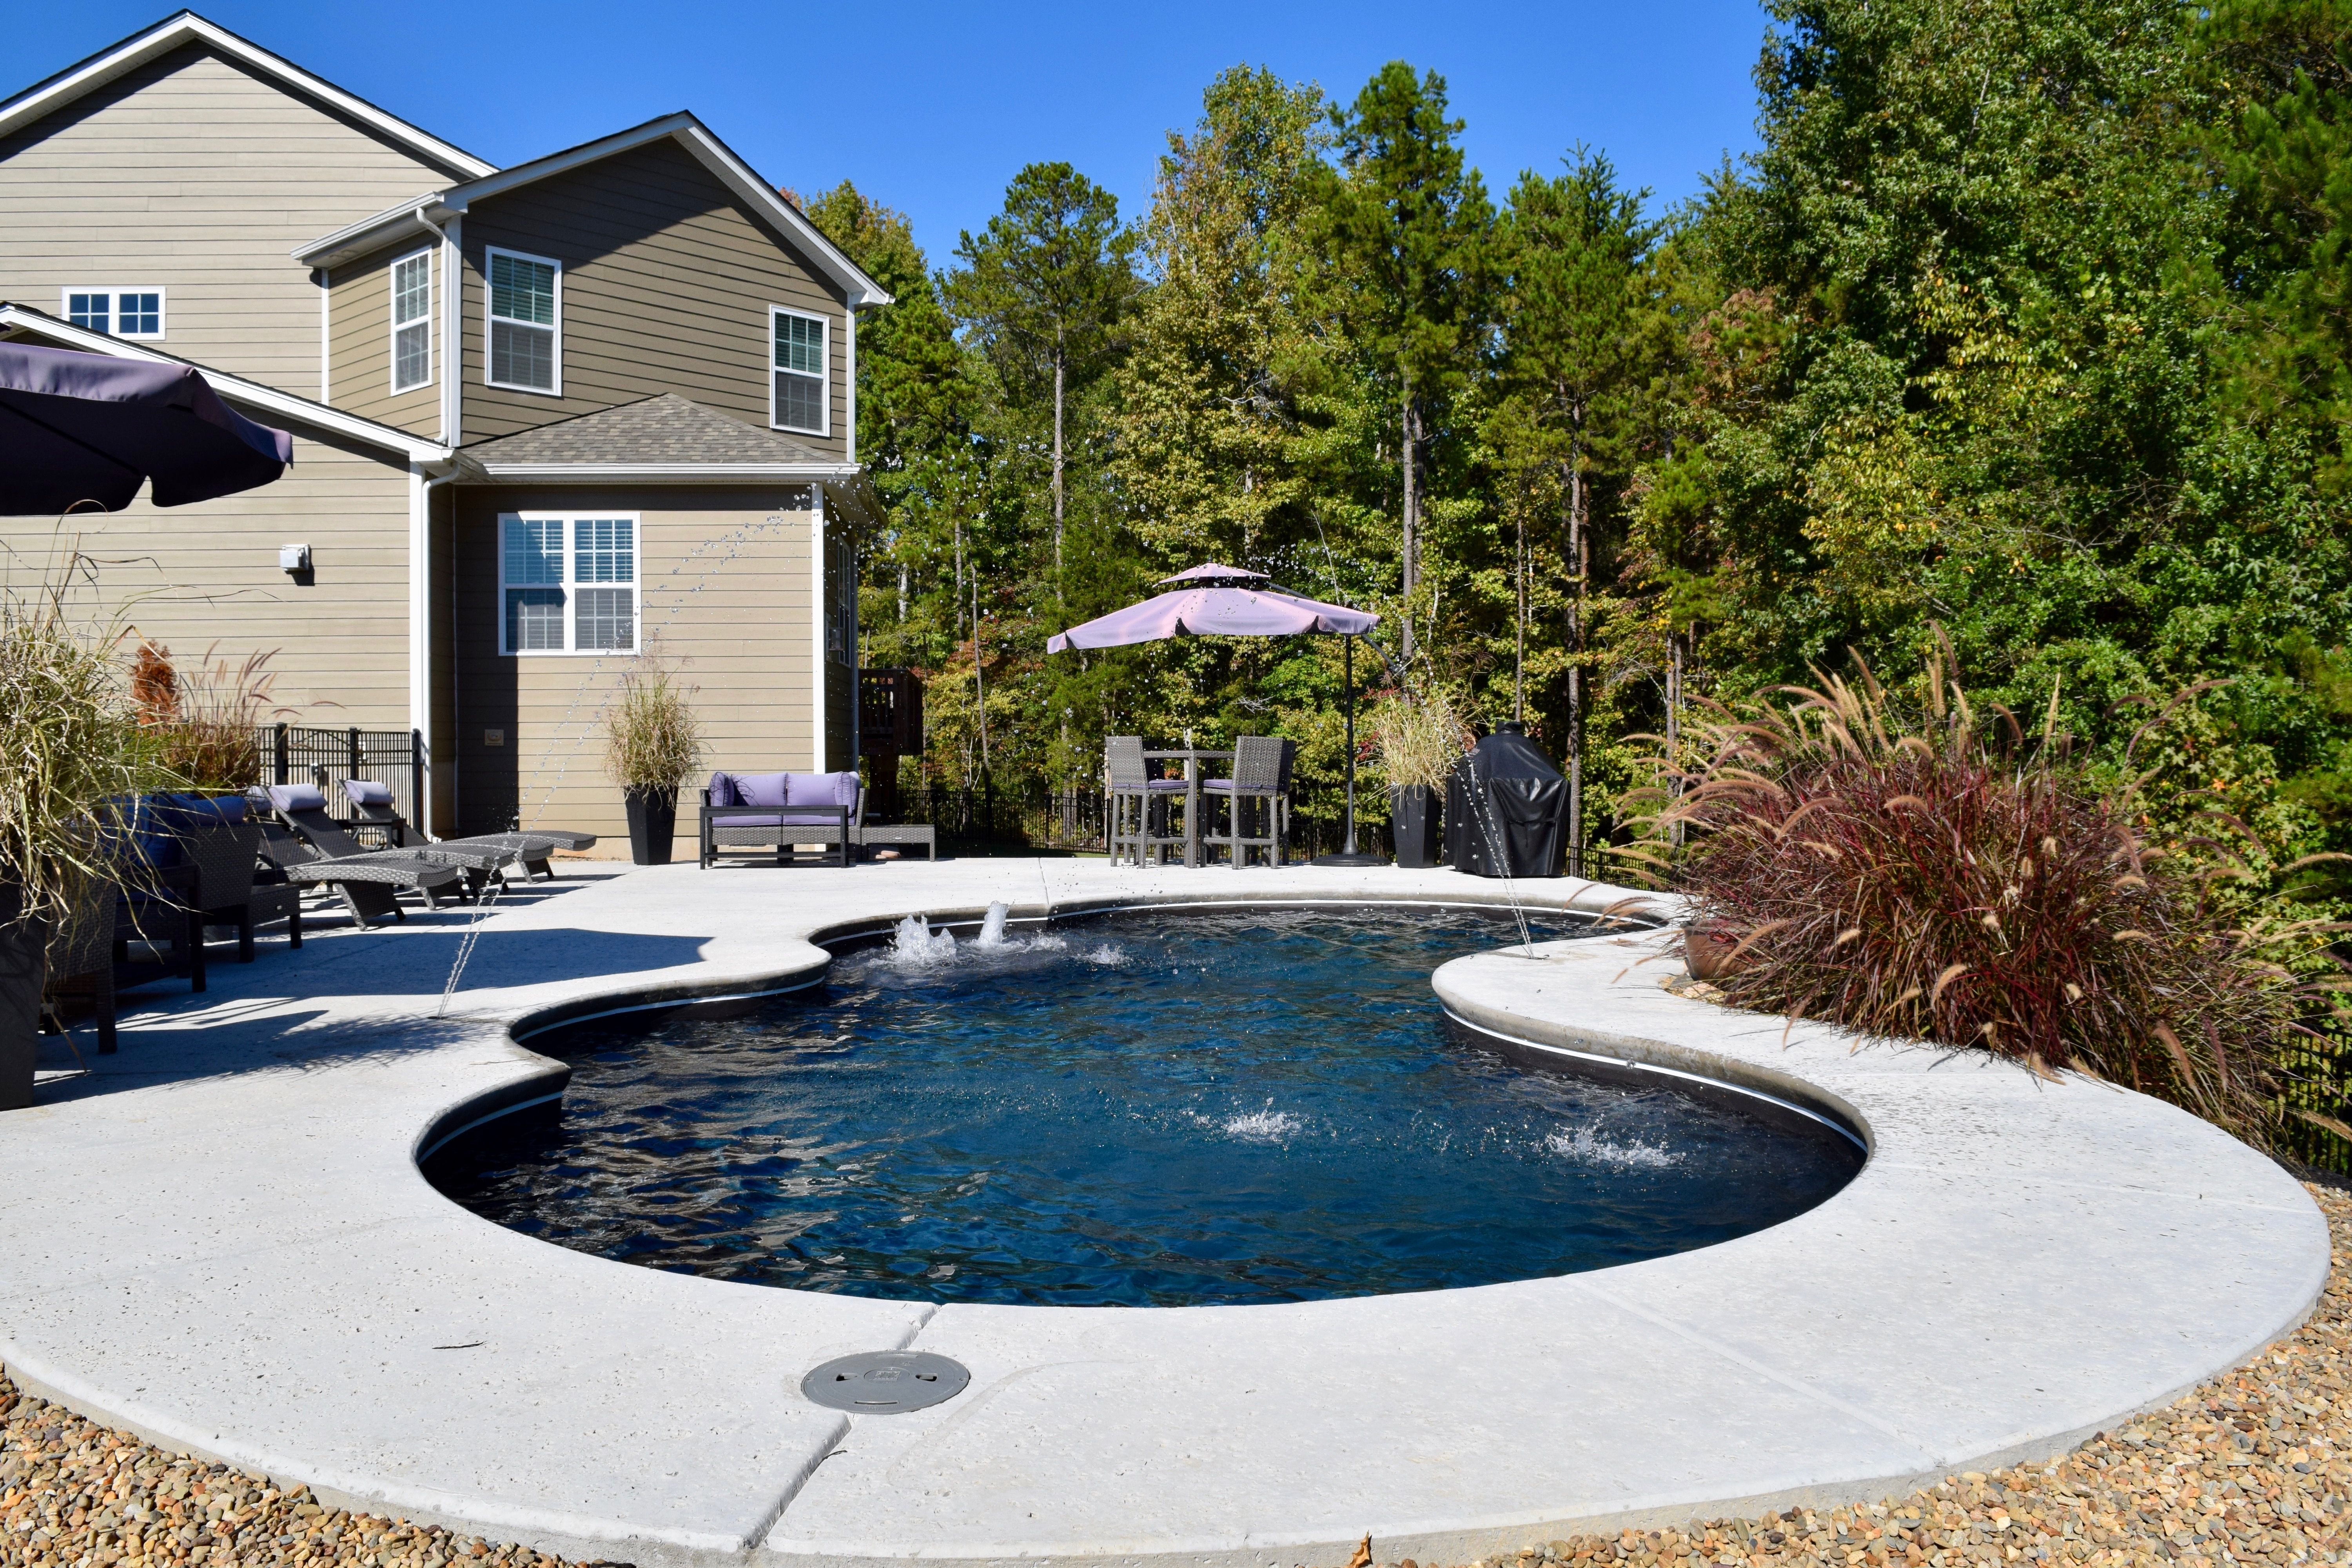 Choosing The Best Inground Pool For You The Features And